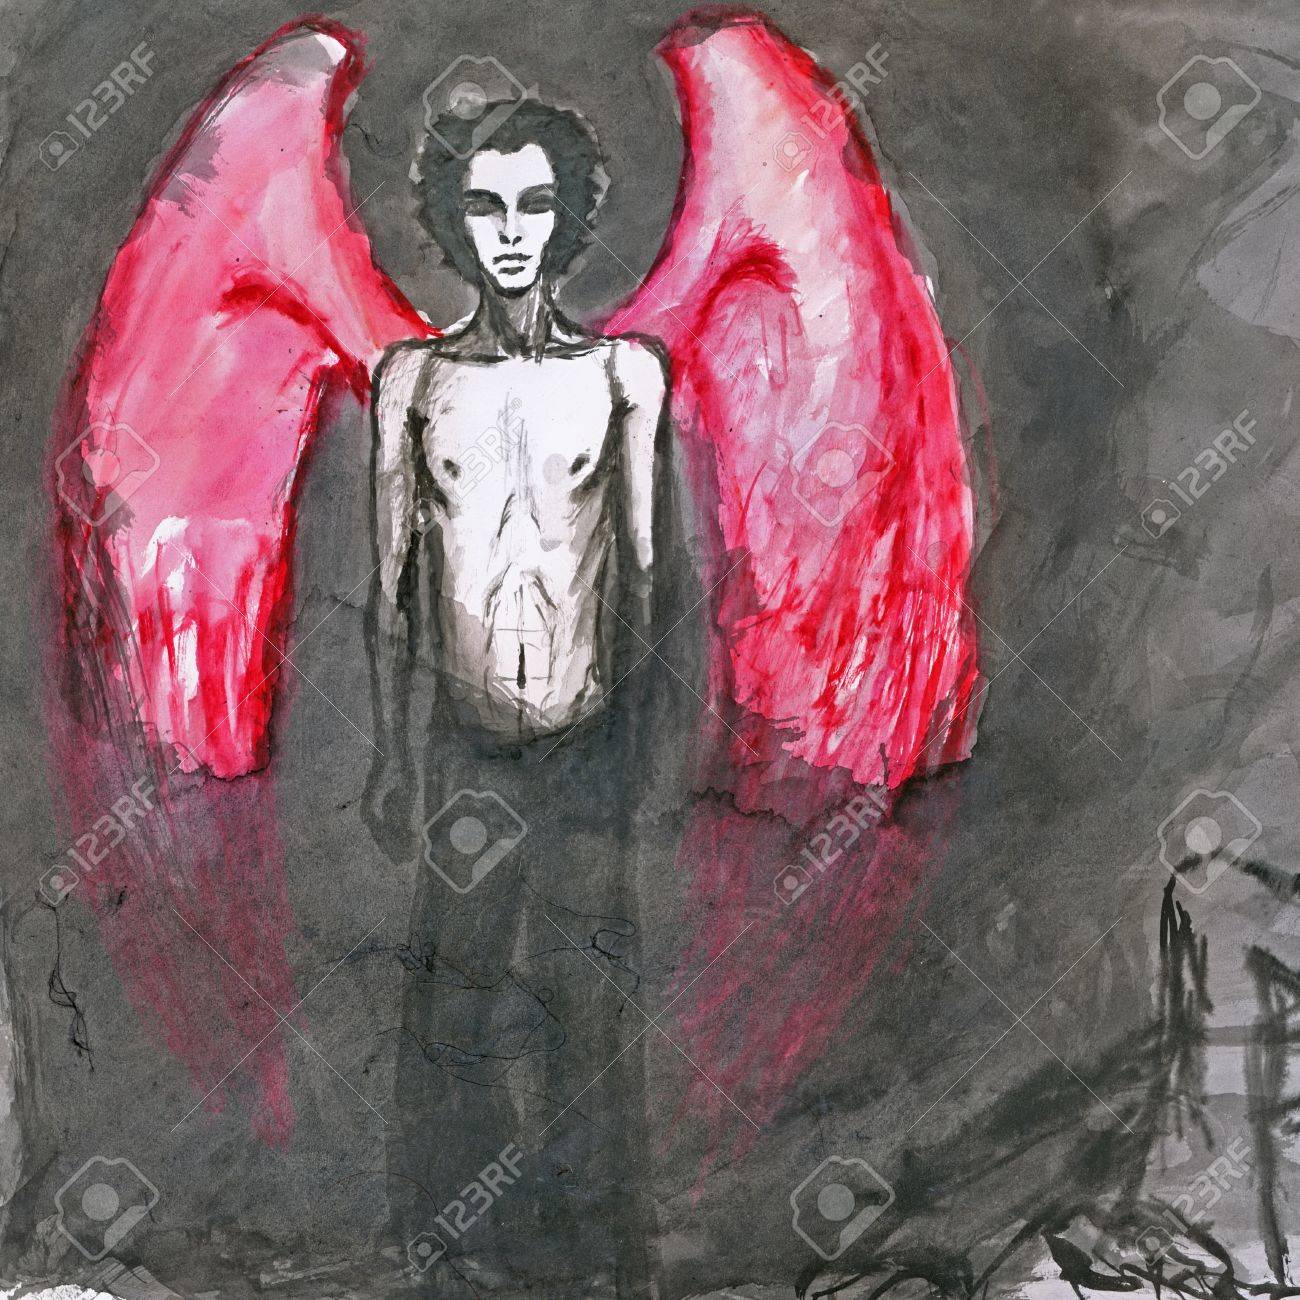 red wings angel - hand painted picture Stock Photo - 14825102